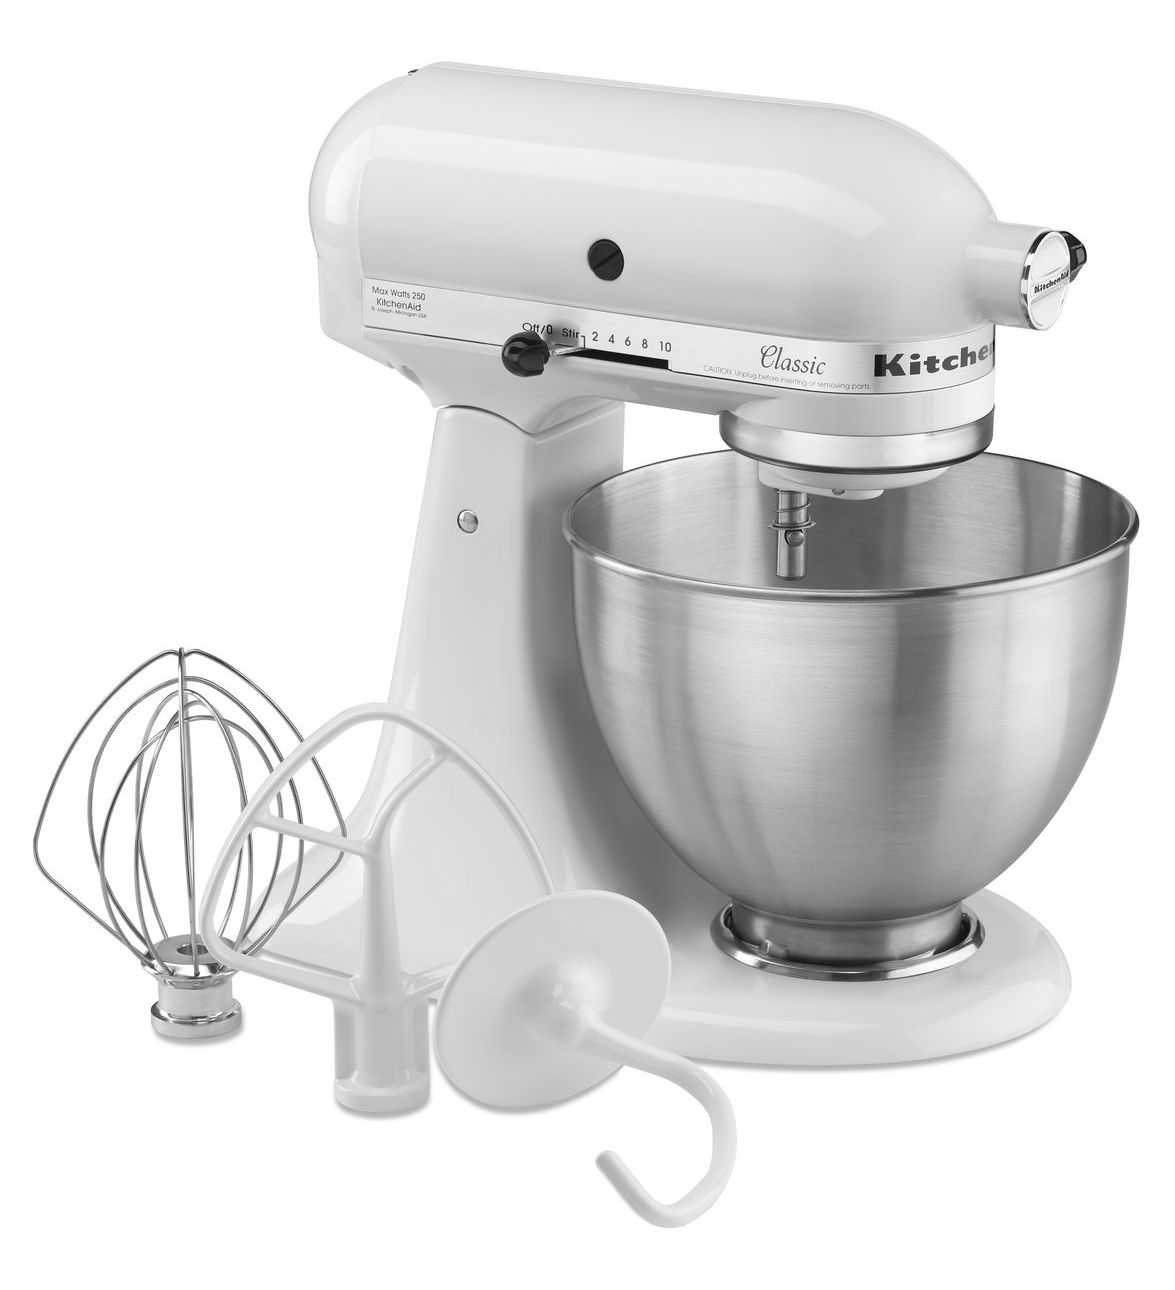 Kitchenaid Clic Series 4 5 Quart Tilt Head